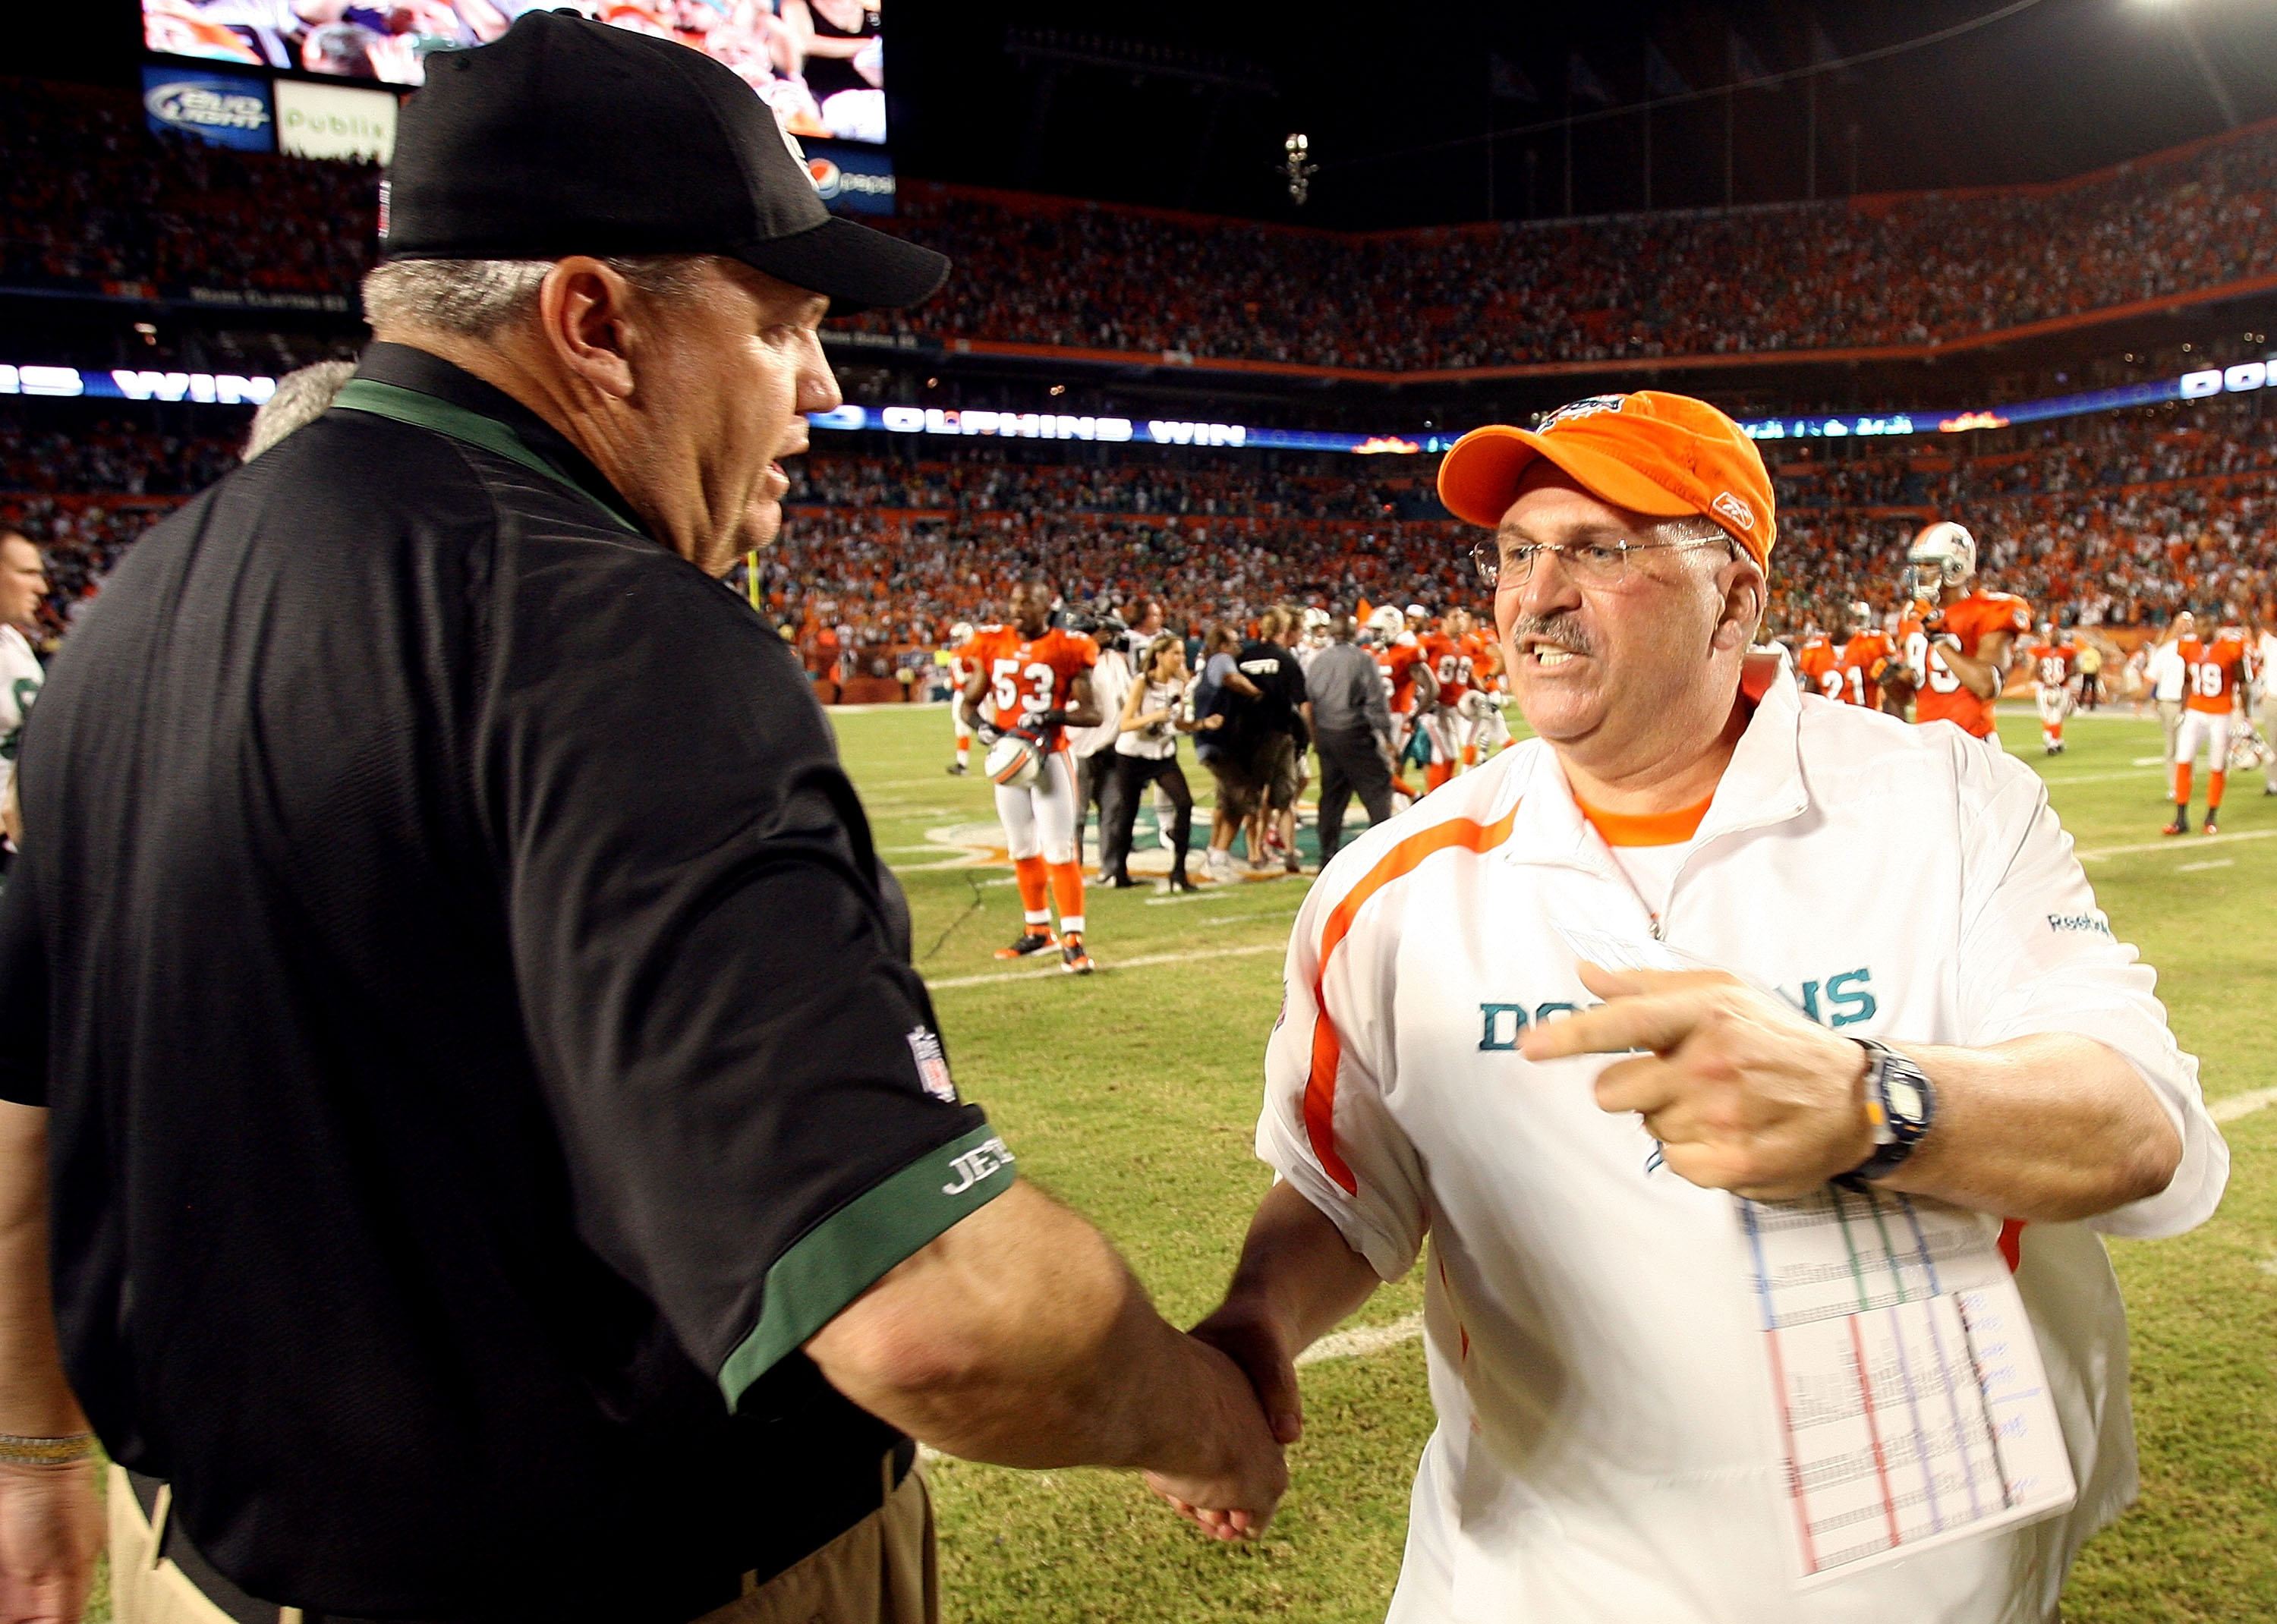 MIAMI - OCTOBER 12:  Head coach Rex Ryan of the New York Jets congratulates head coach Tony Sparano of the Miami Dolphins at Land Shark Stadium on October 12, 2009 in Miami, Florida. The Dolphins defeated the Jets 31-27.  (Photo by Doug Benc/Getty Images)